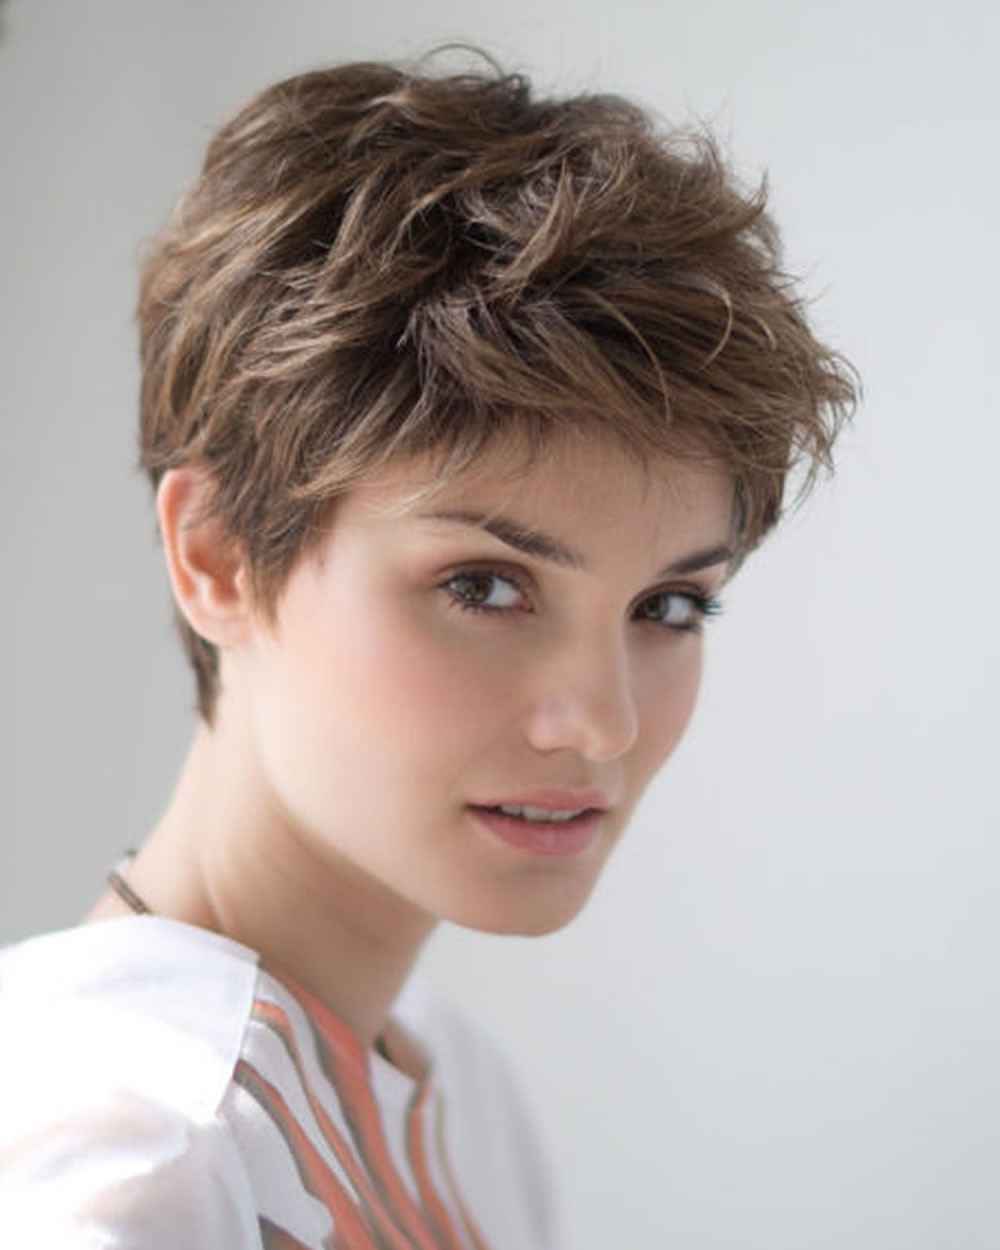 Trendy Short Haircut Images And Pixie Hairstyles For 2018 2019 Hair With Regard To Trendy Short Hairstyles (View 16 of 25)